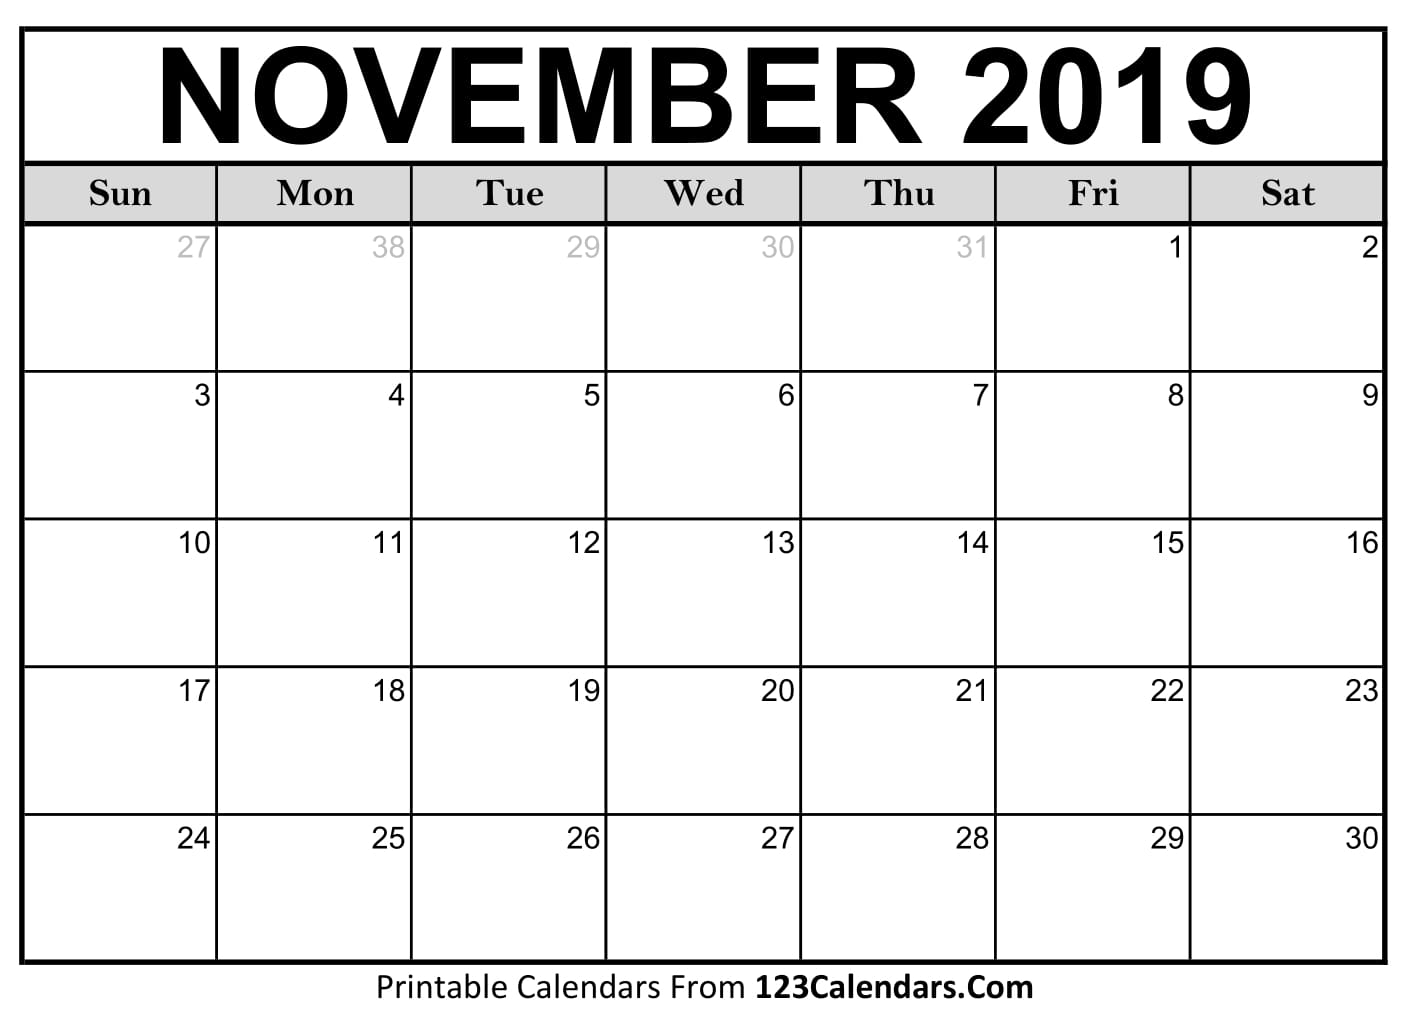 picture about November Printable Calendar known as November 2019 Printable Calendar